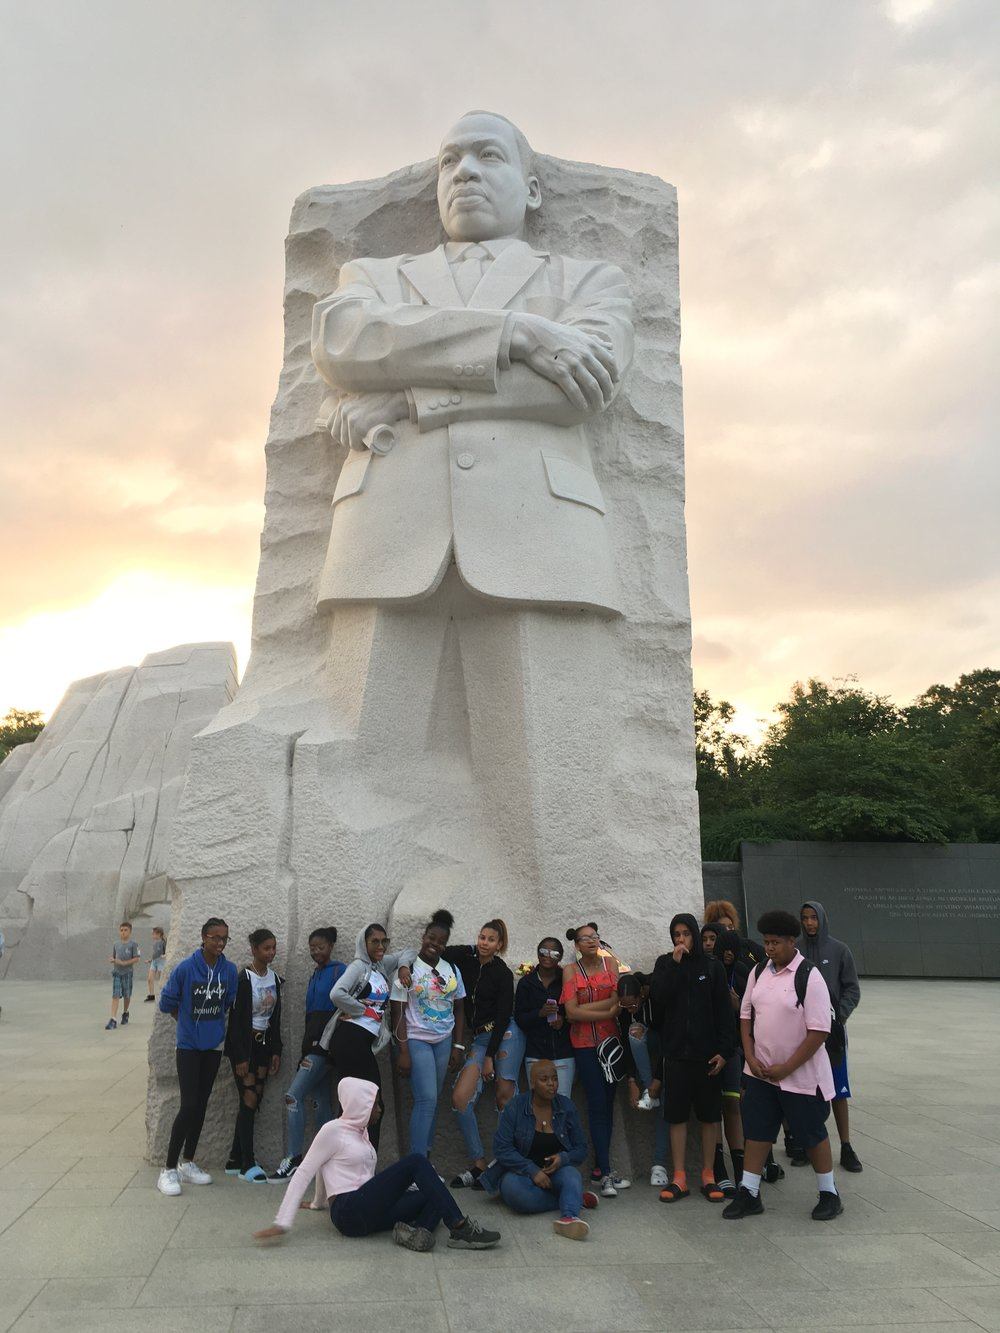 Posing with Dr. Martin Luther King, Jr.'s statue